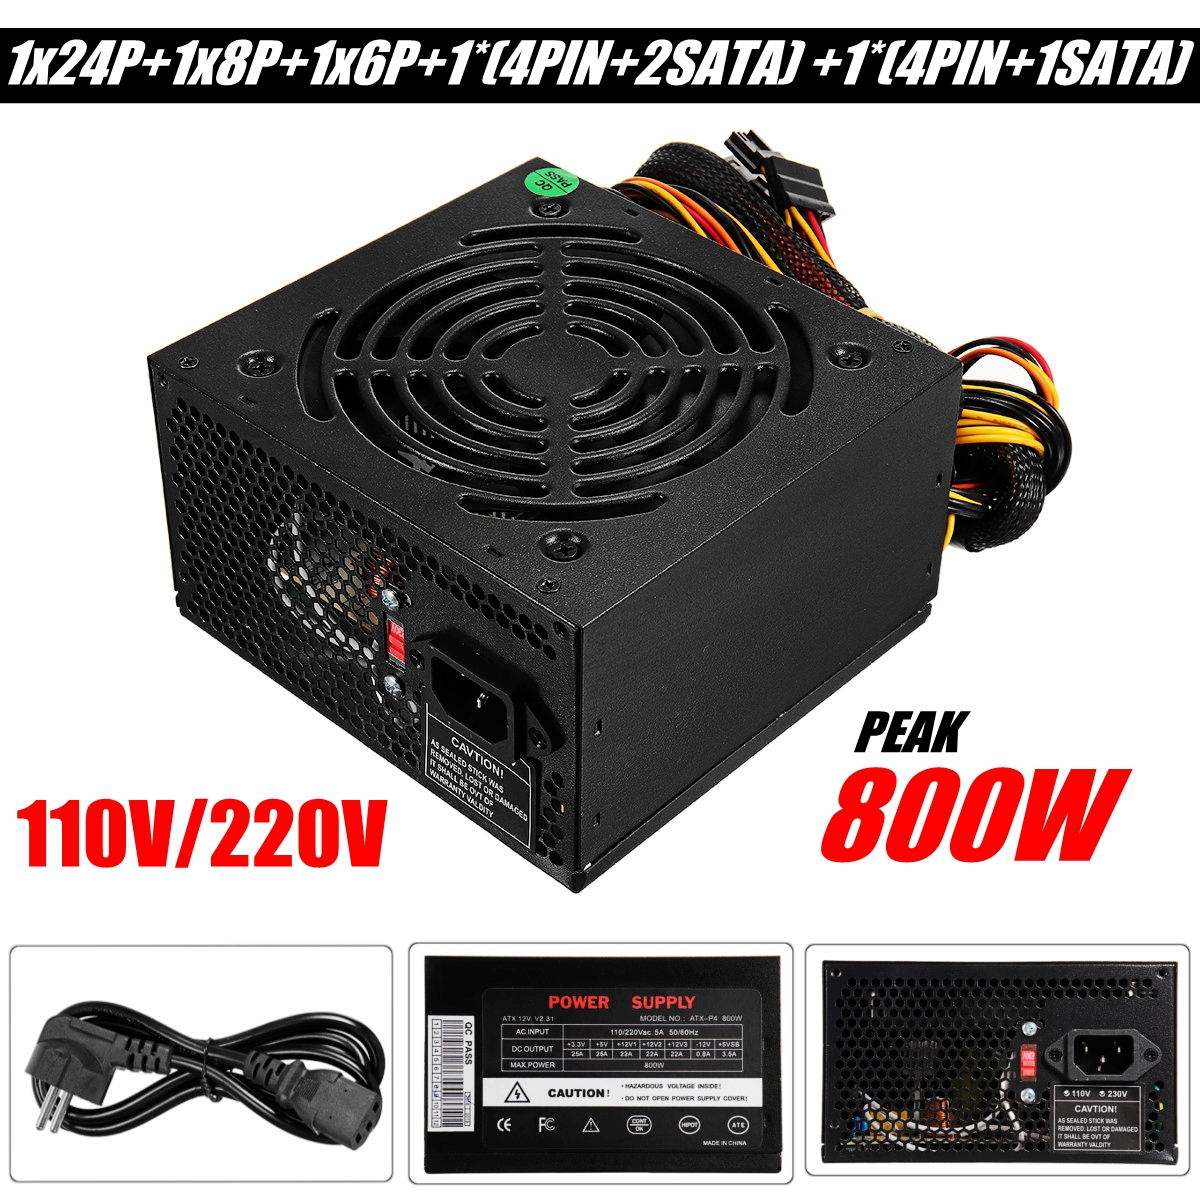 Noir Max 800 W alimentation PSU PFC ventilateur silencieux ATX 24 broches PC ordinateur SATA Gaming PC alimentation pour ordinateur Intel AMDNoir Max 800 W alimentation PSU PFC ventilateur silencieux ATX 24 broches PC ordinateur SATA Gaming PC alimentation pour ordinateur Intel AMD